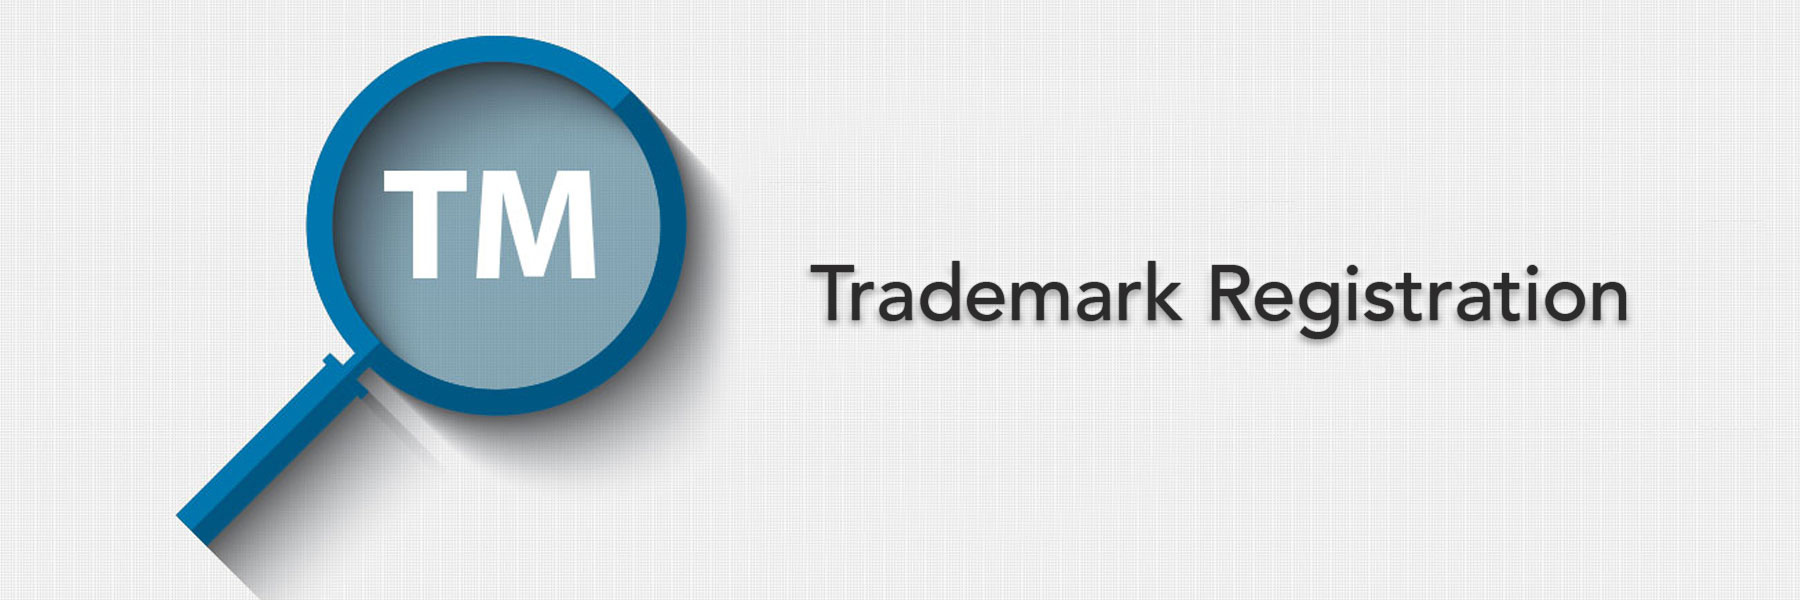 Trademark Registration procedure in India